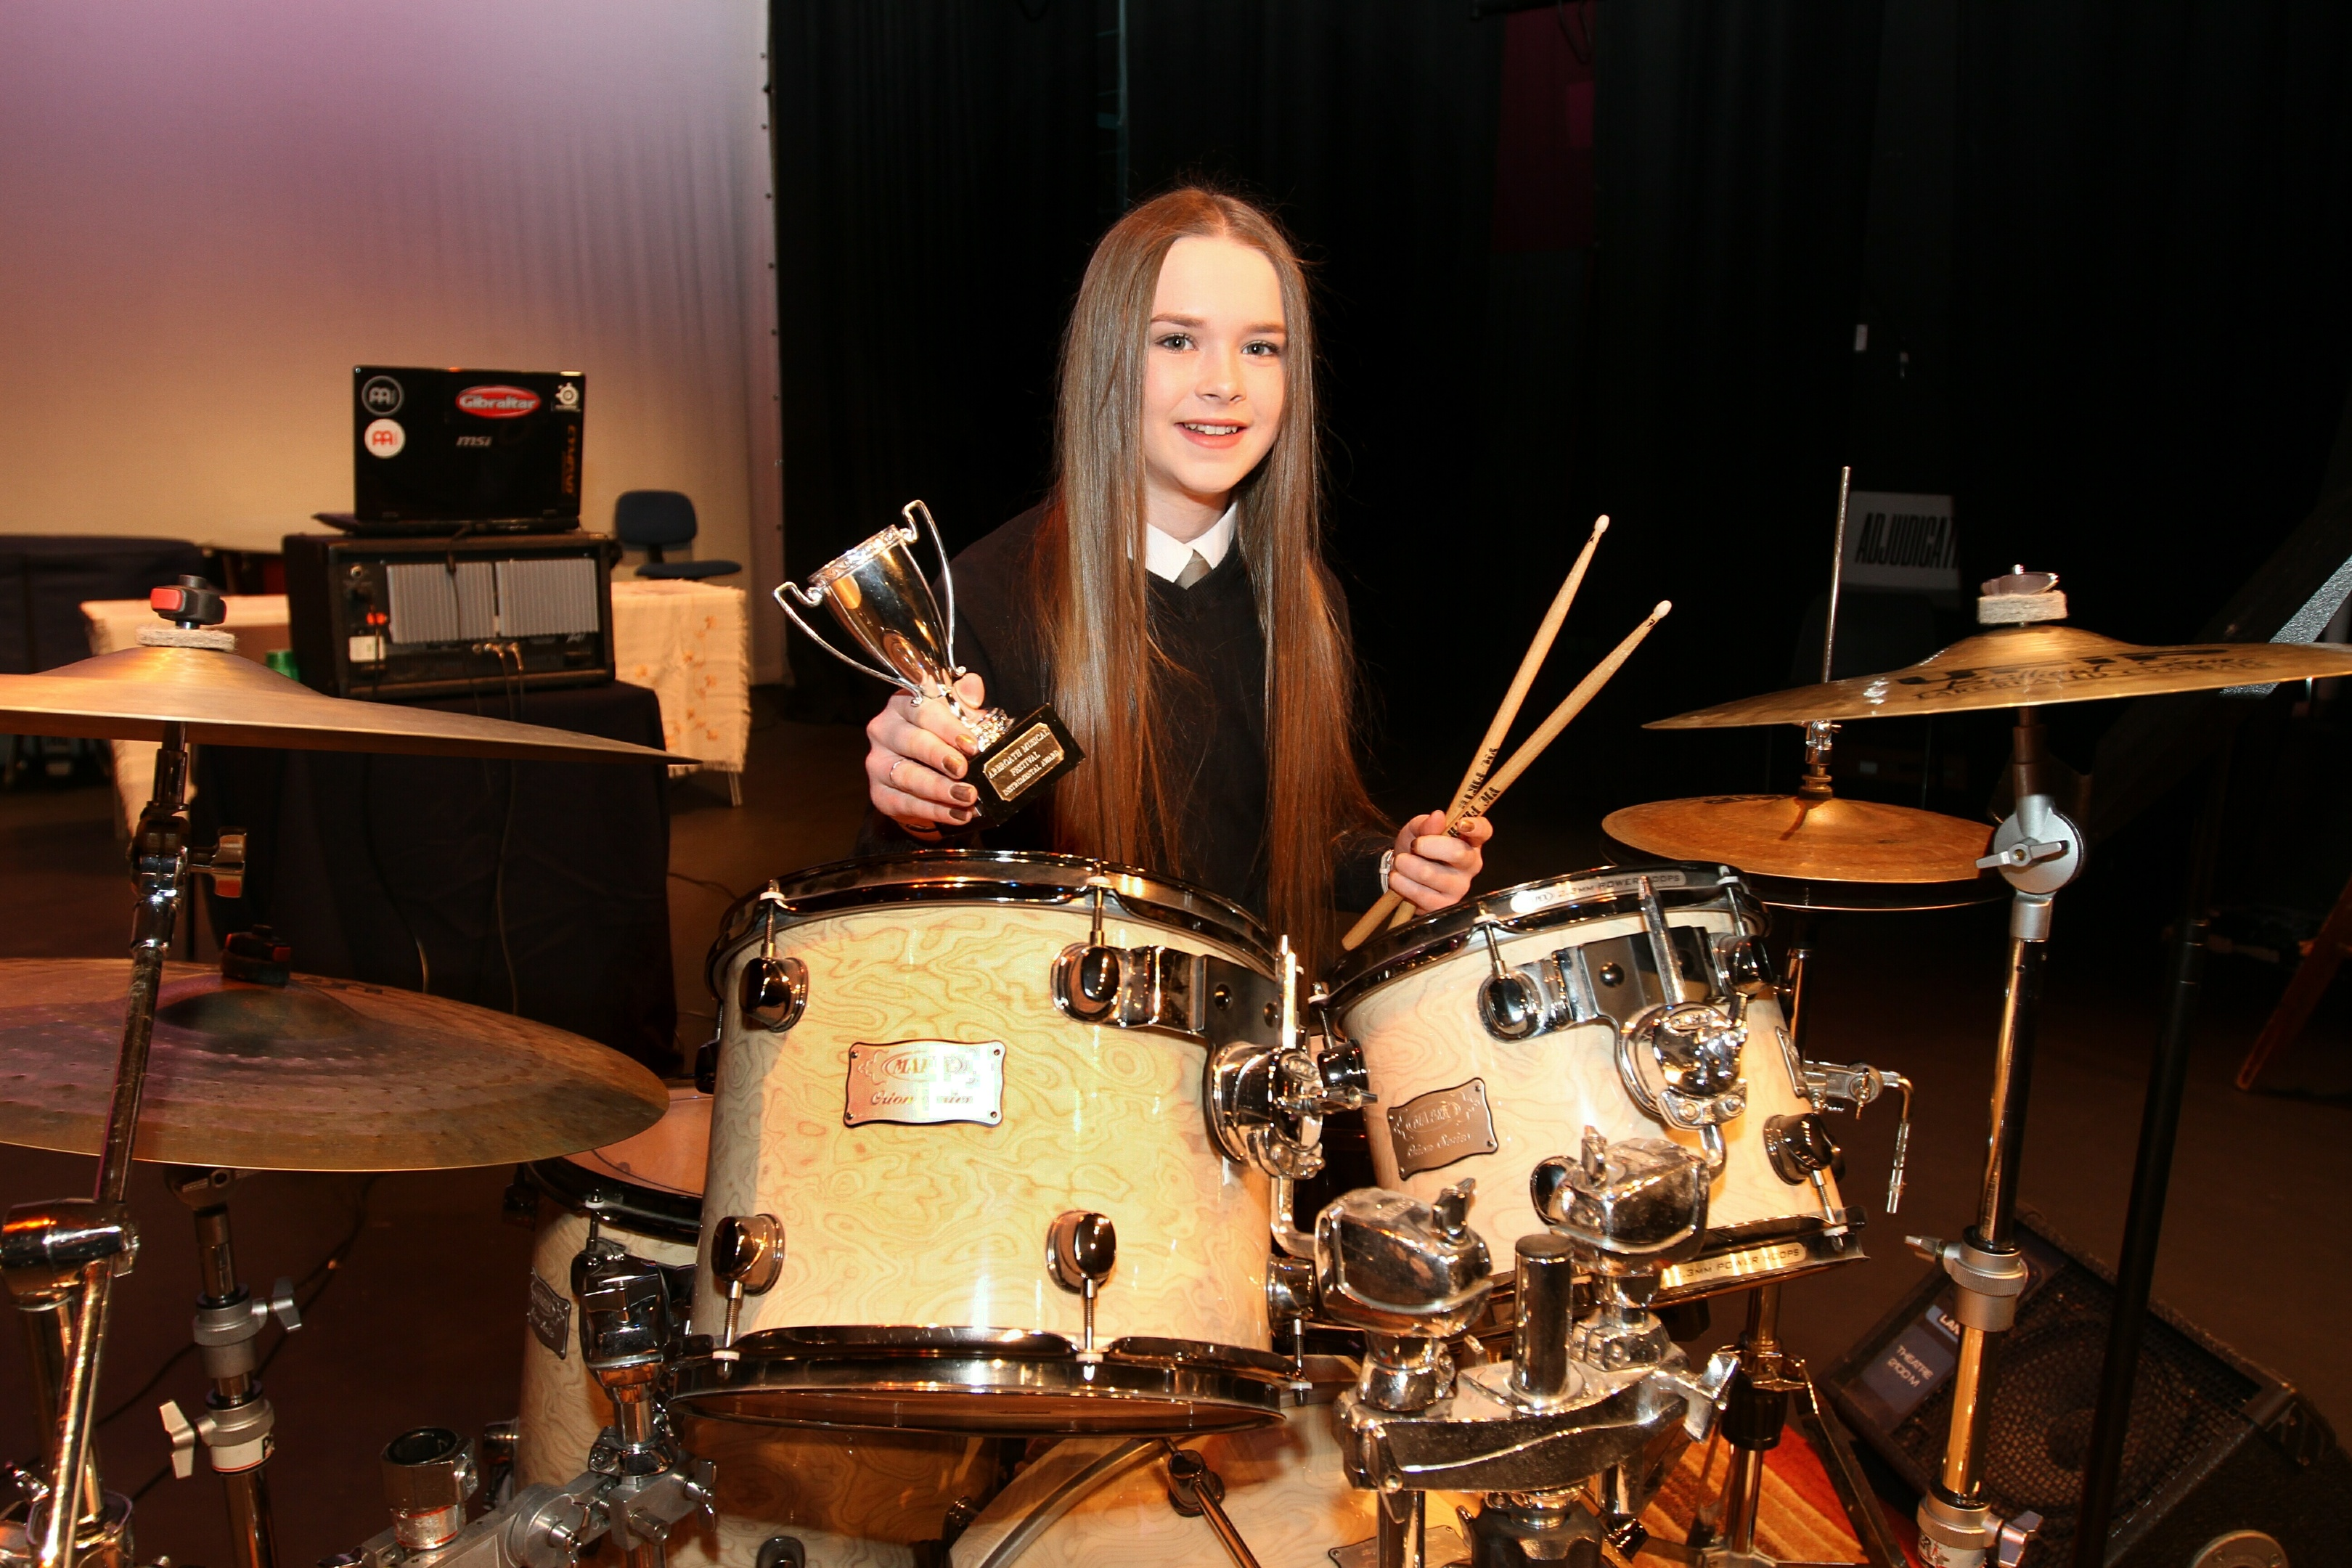 Ami Conchie  from Carnoustie High School was a winner this year.